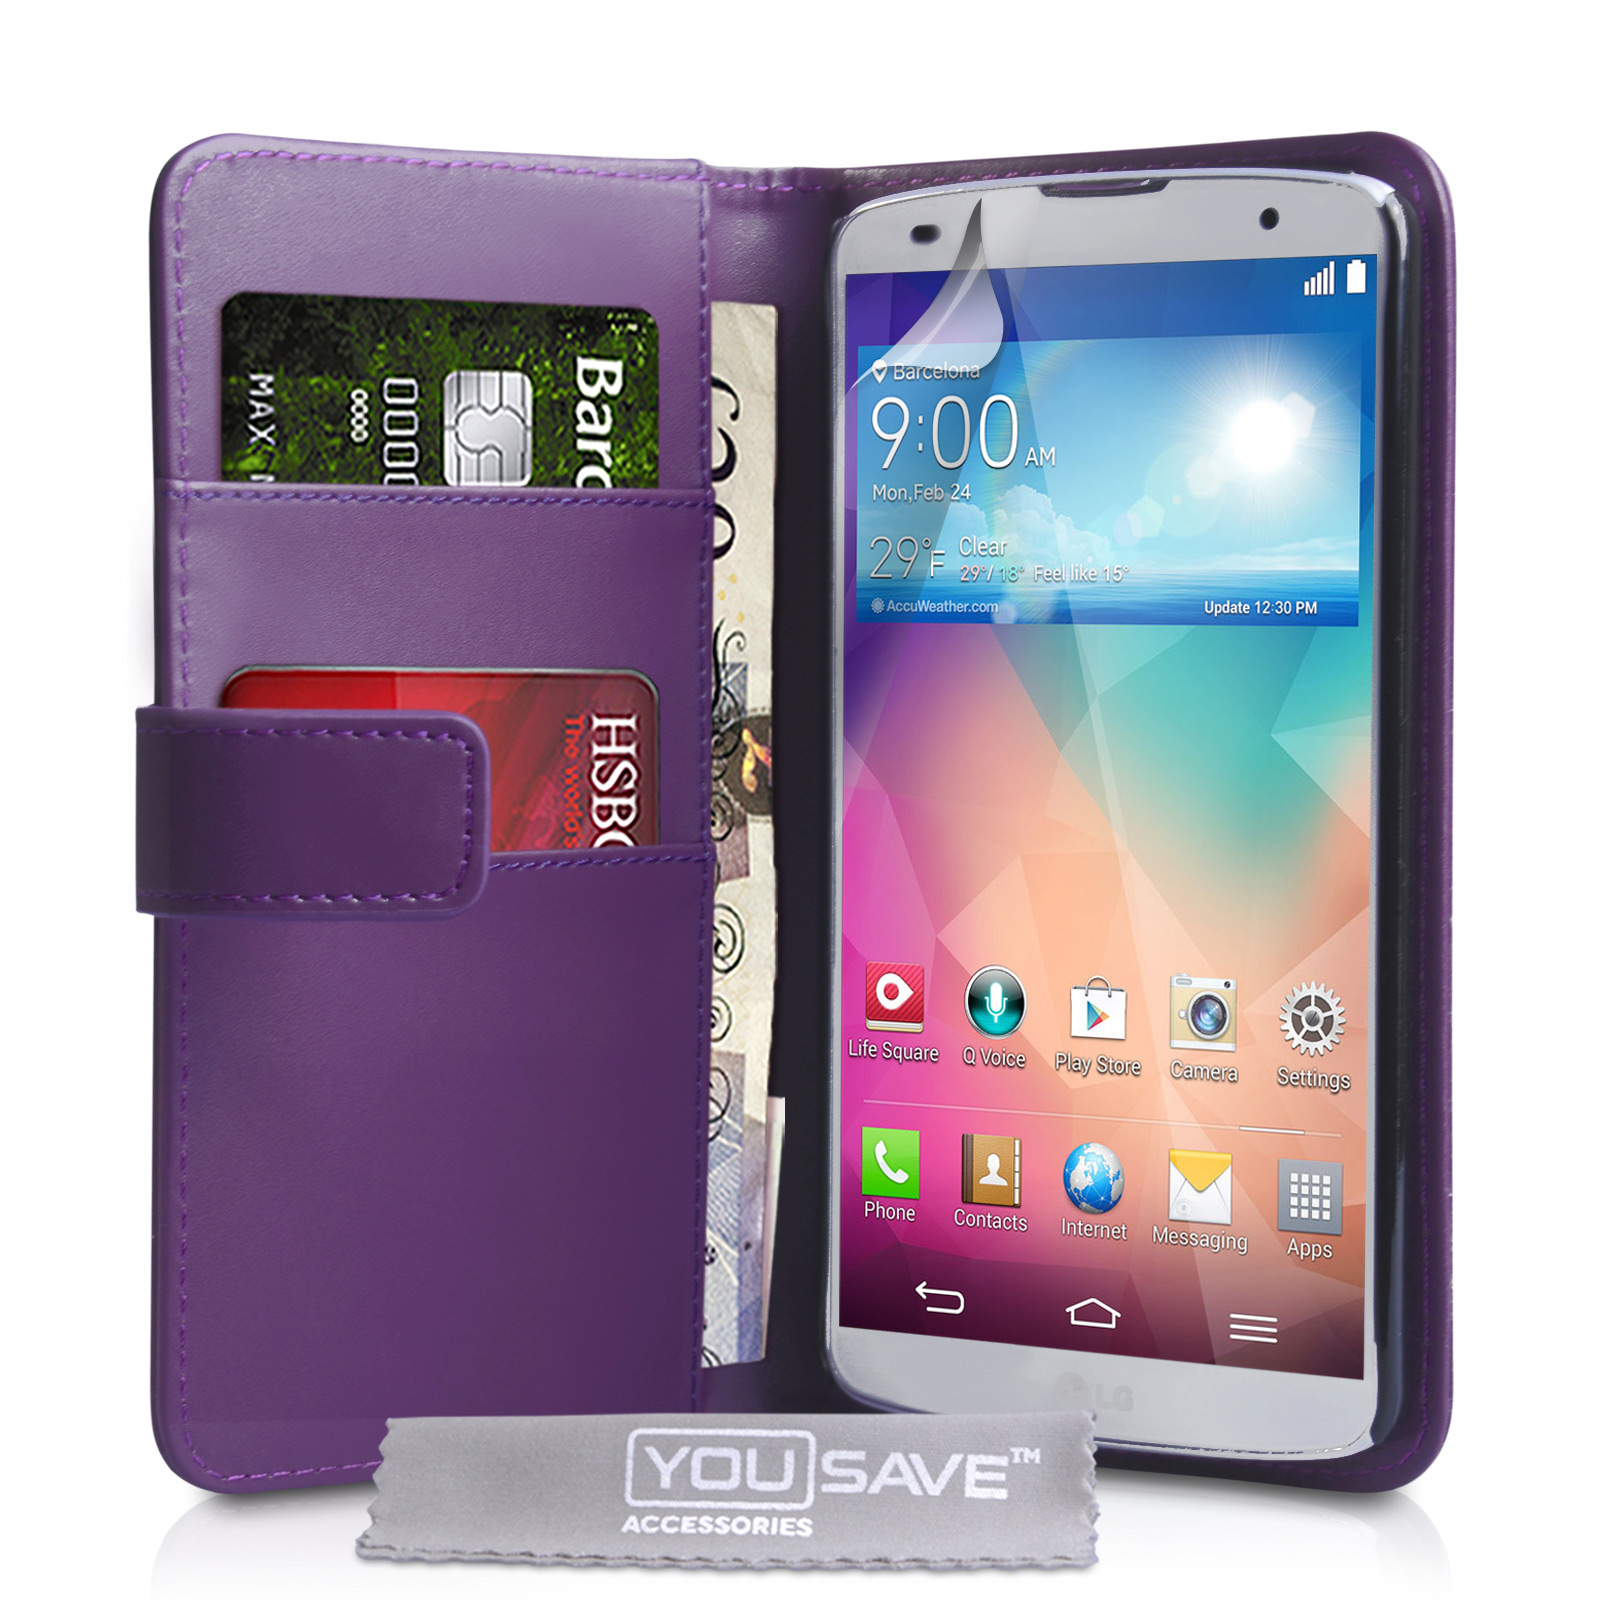 YouSave Accessories LG G Pro 2 Leather-Effect Wallet Case - Purple